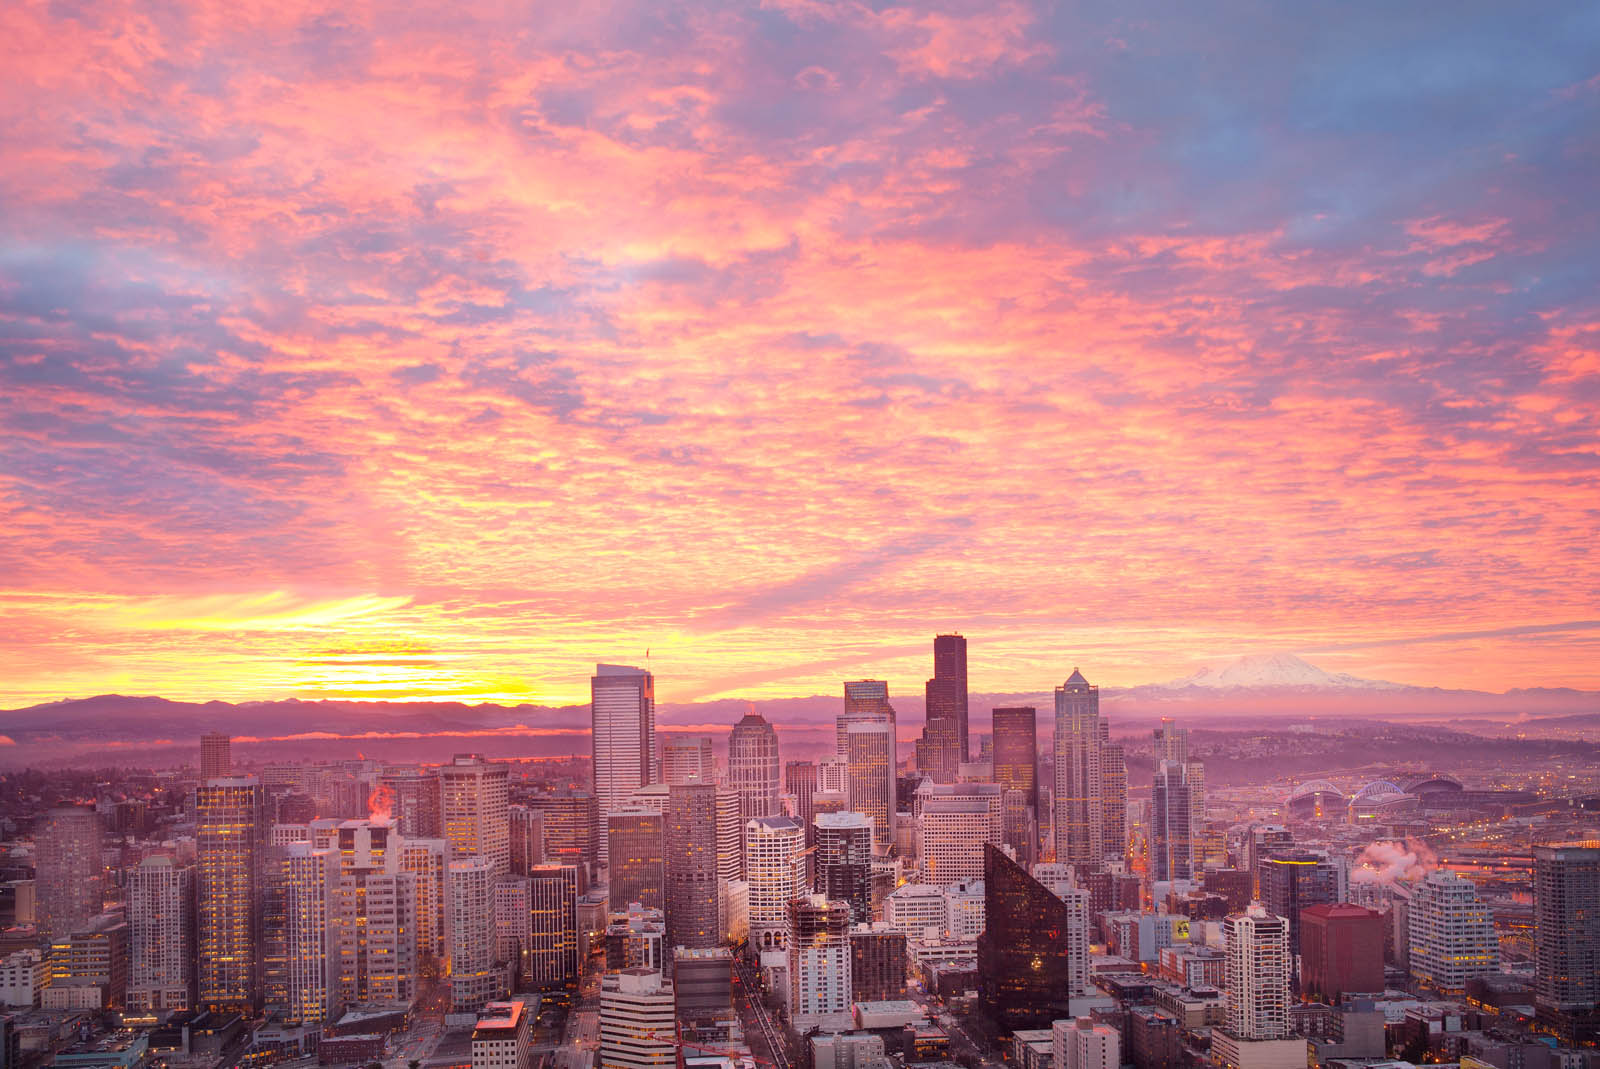 Seattle cityscape at sunset.